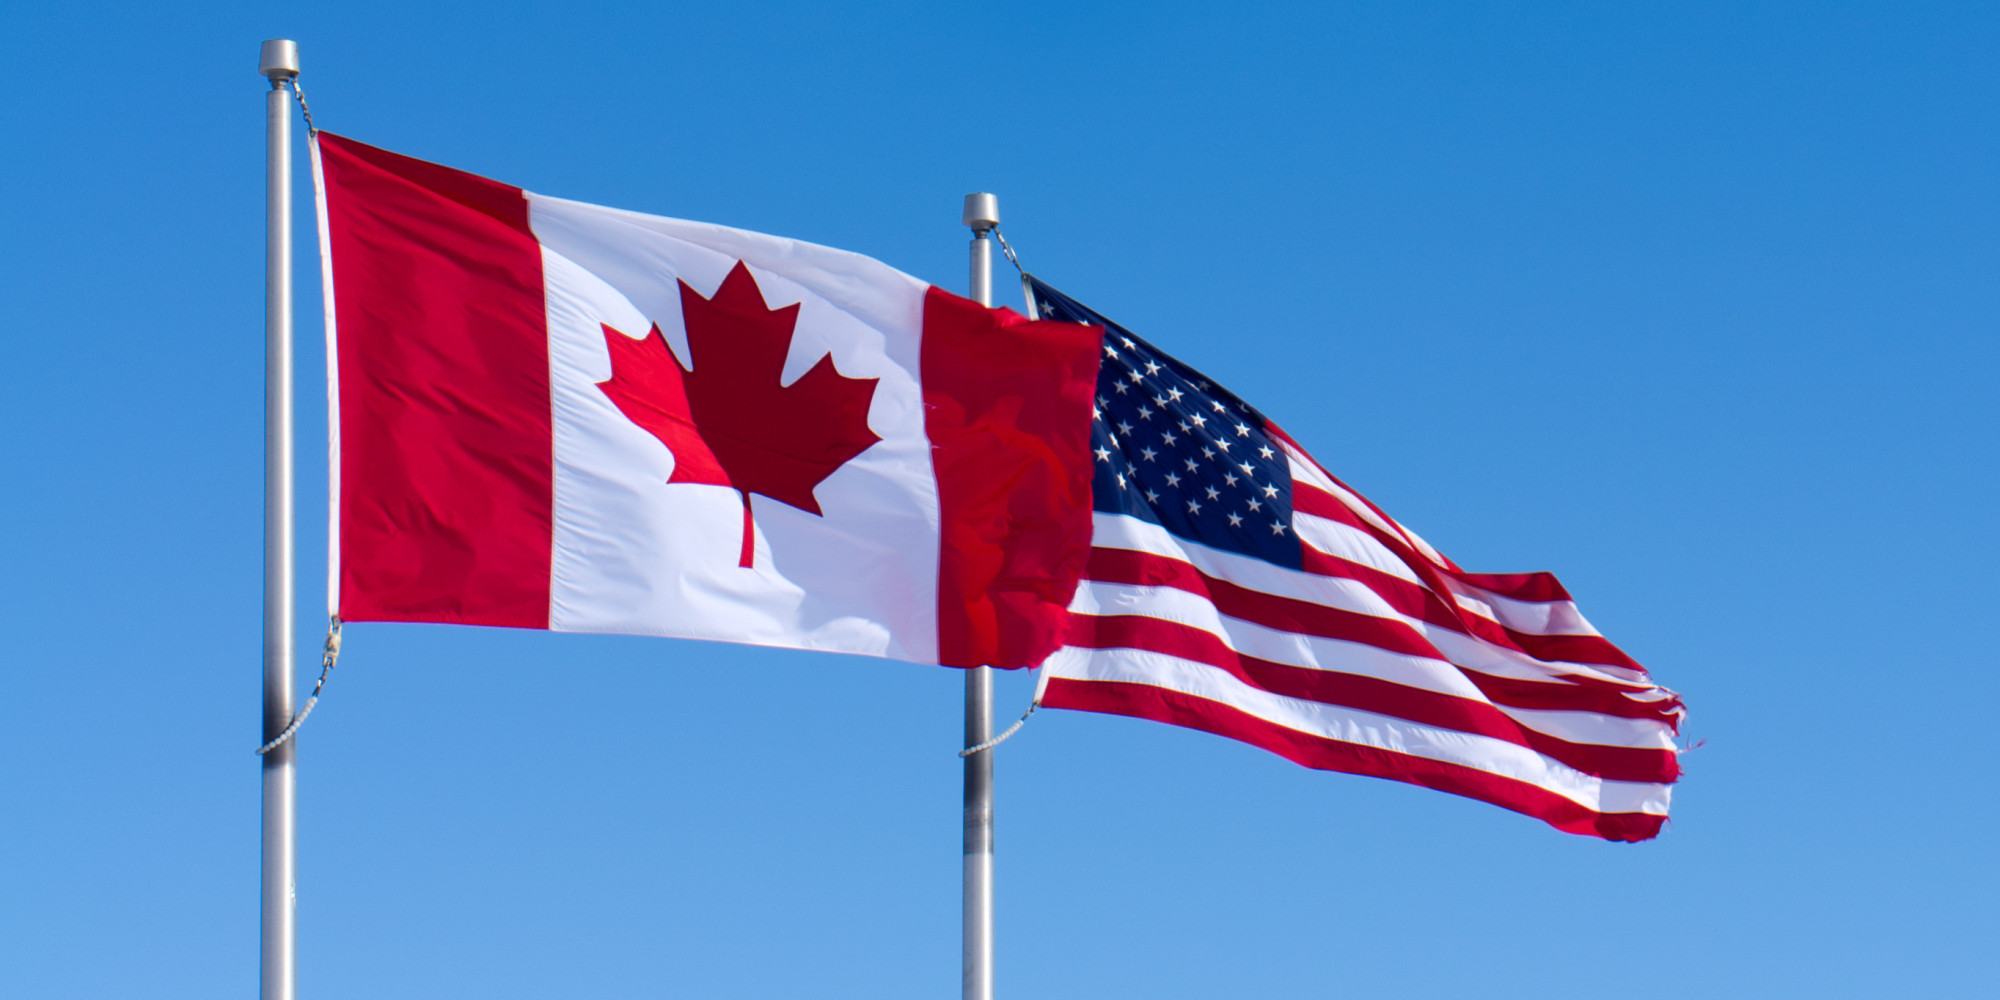 The United States and Canada: The Strength of Partnership | U.S. Embassy & Consulates in Canada